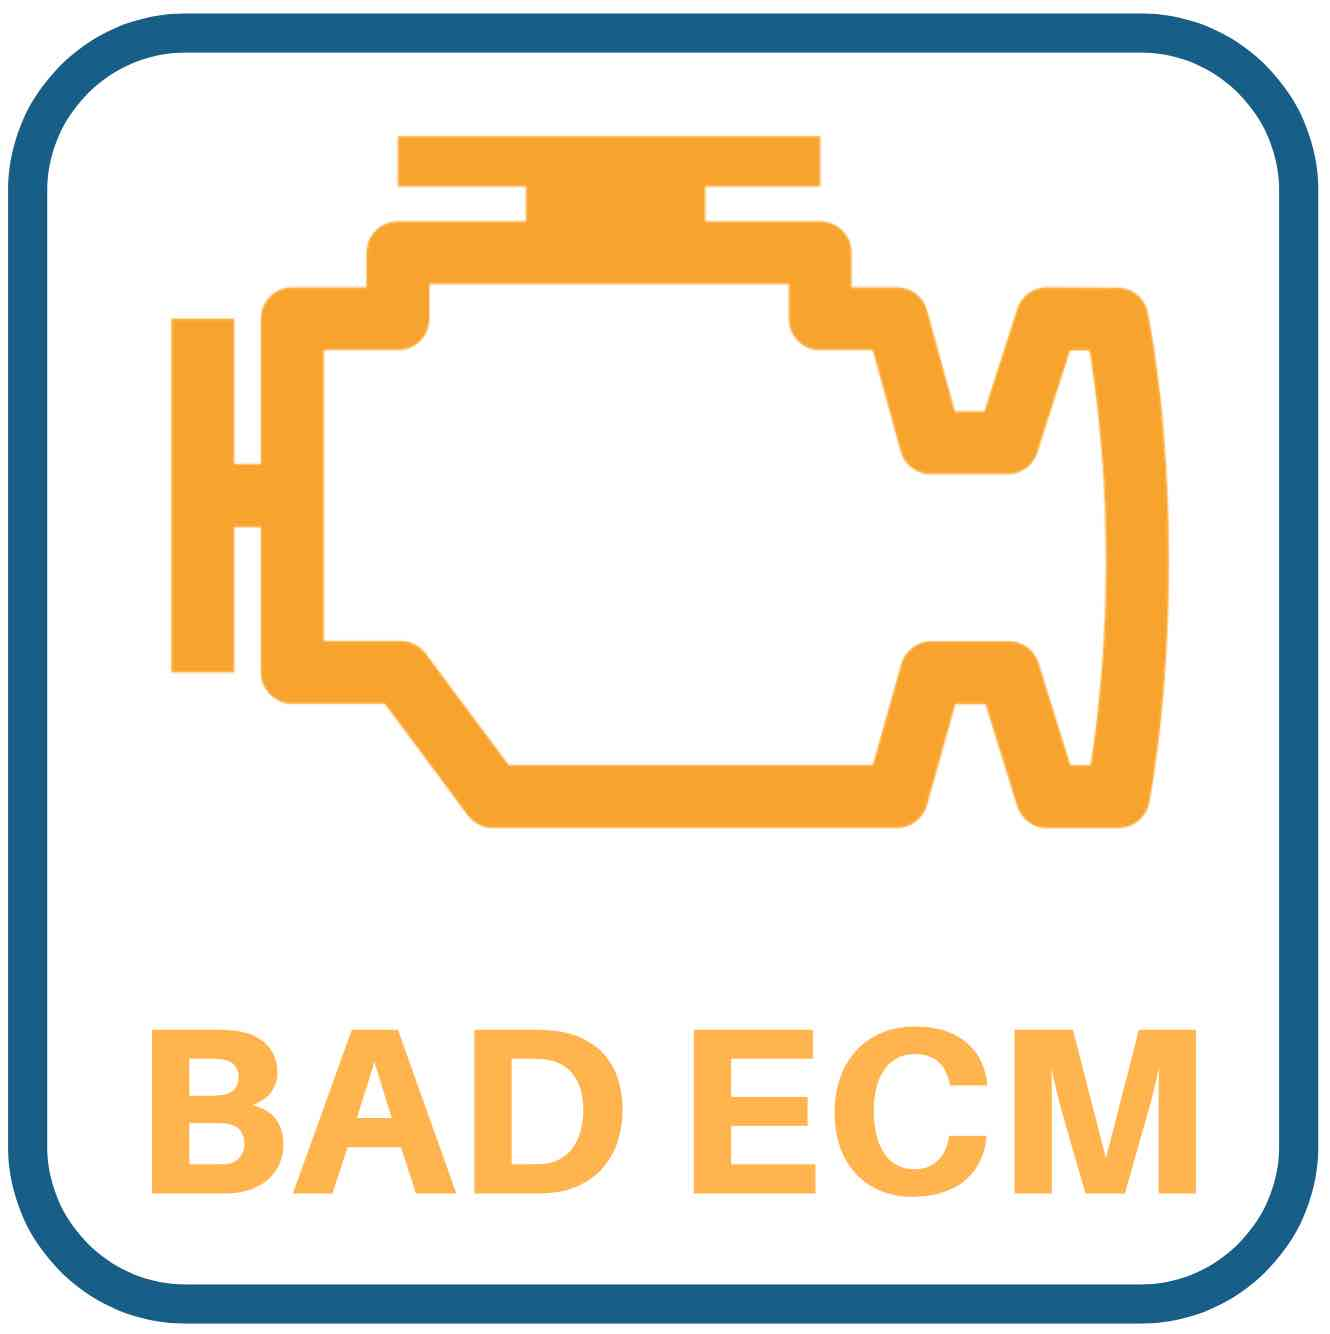 Chevy Suburban Bad ECM Symptoms